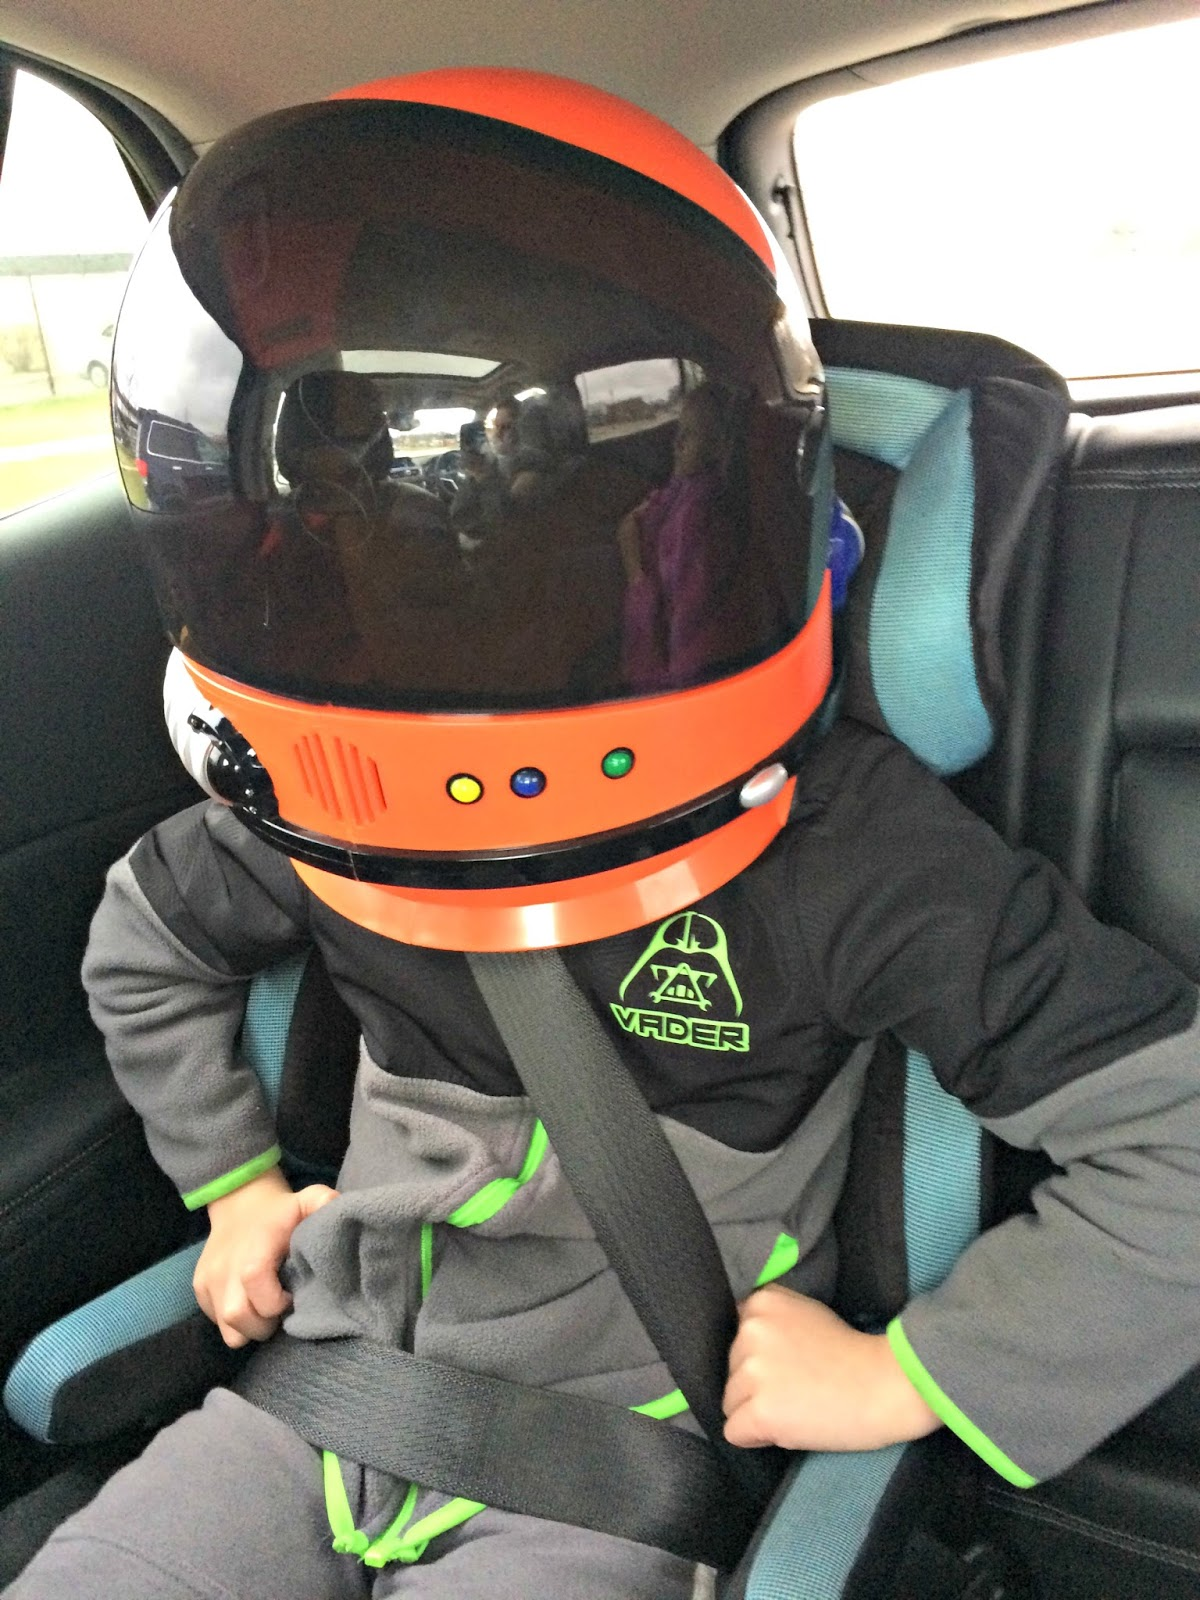 A GEEK DADDY: BLAST OFF TO ADVENTURE IN AN AEROMAX TOYS ...